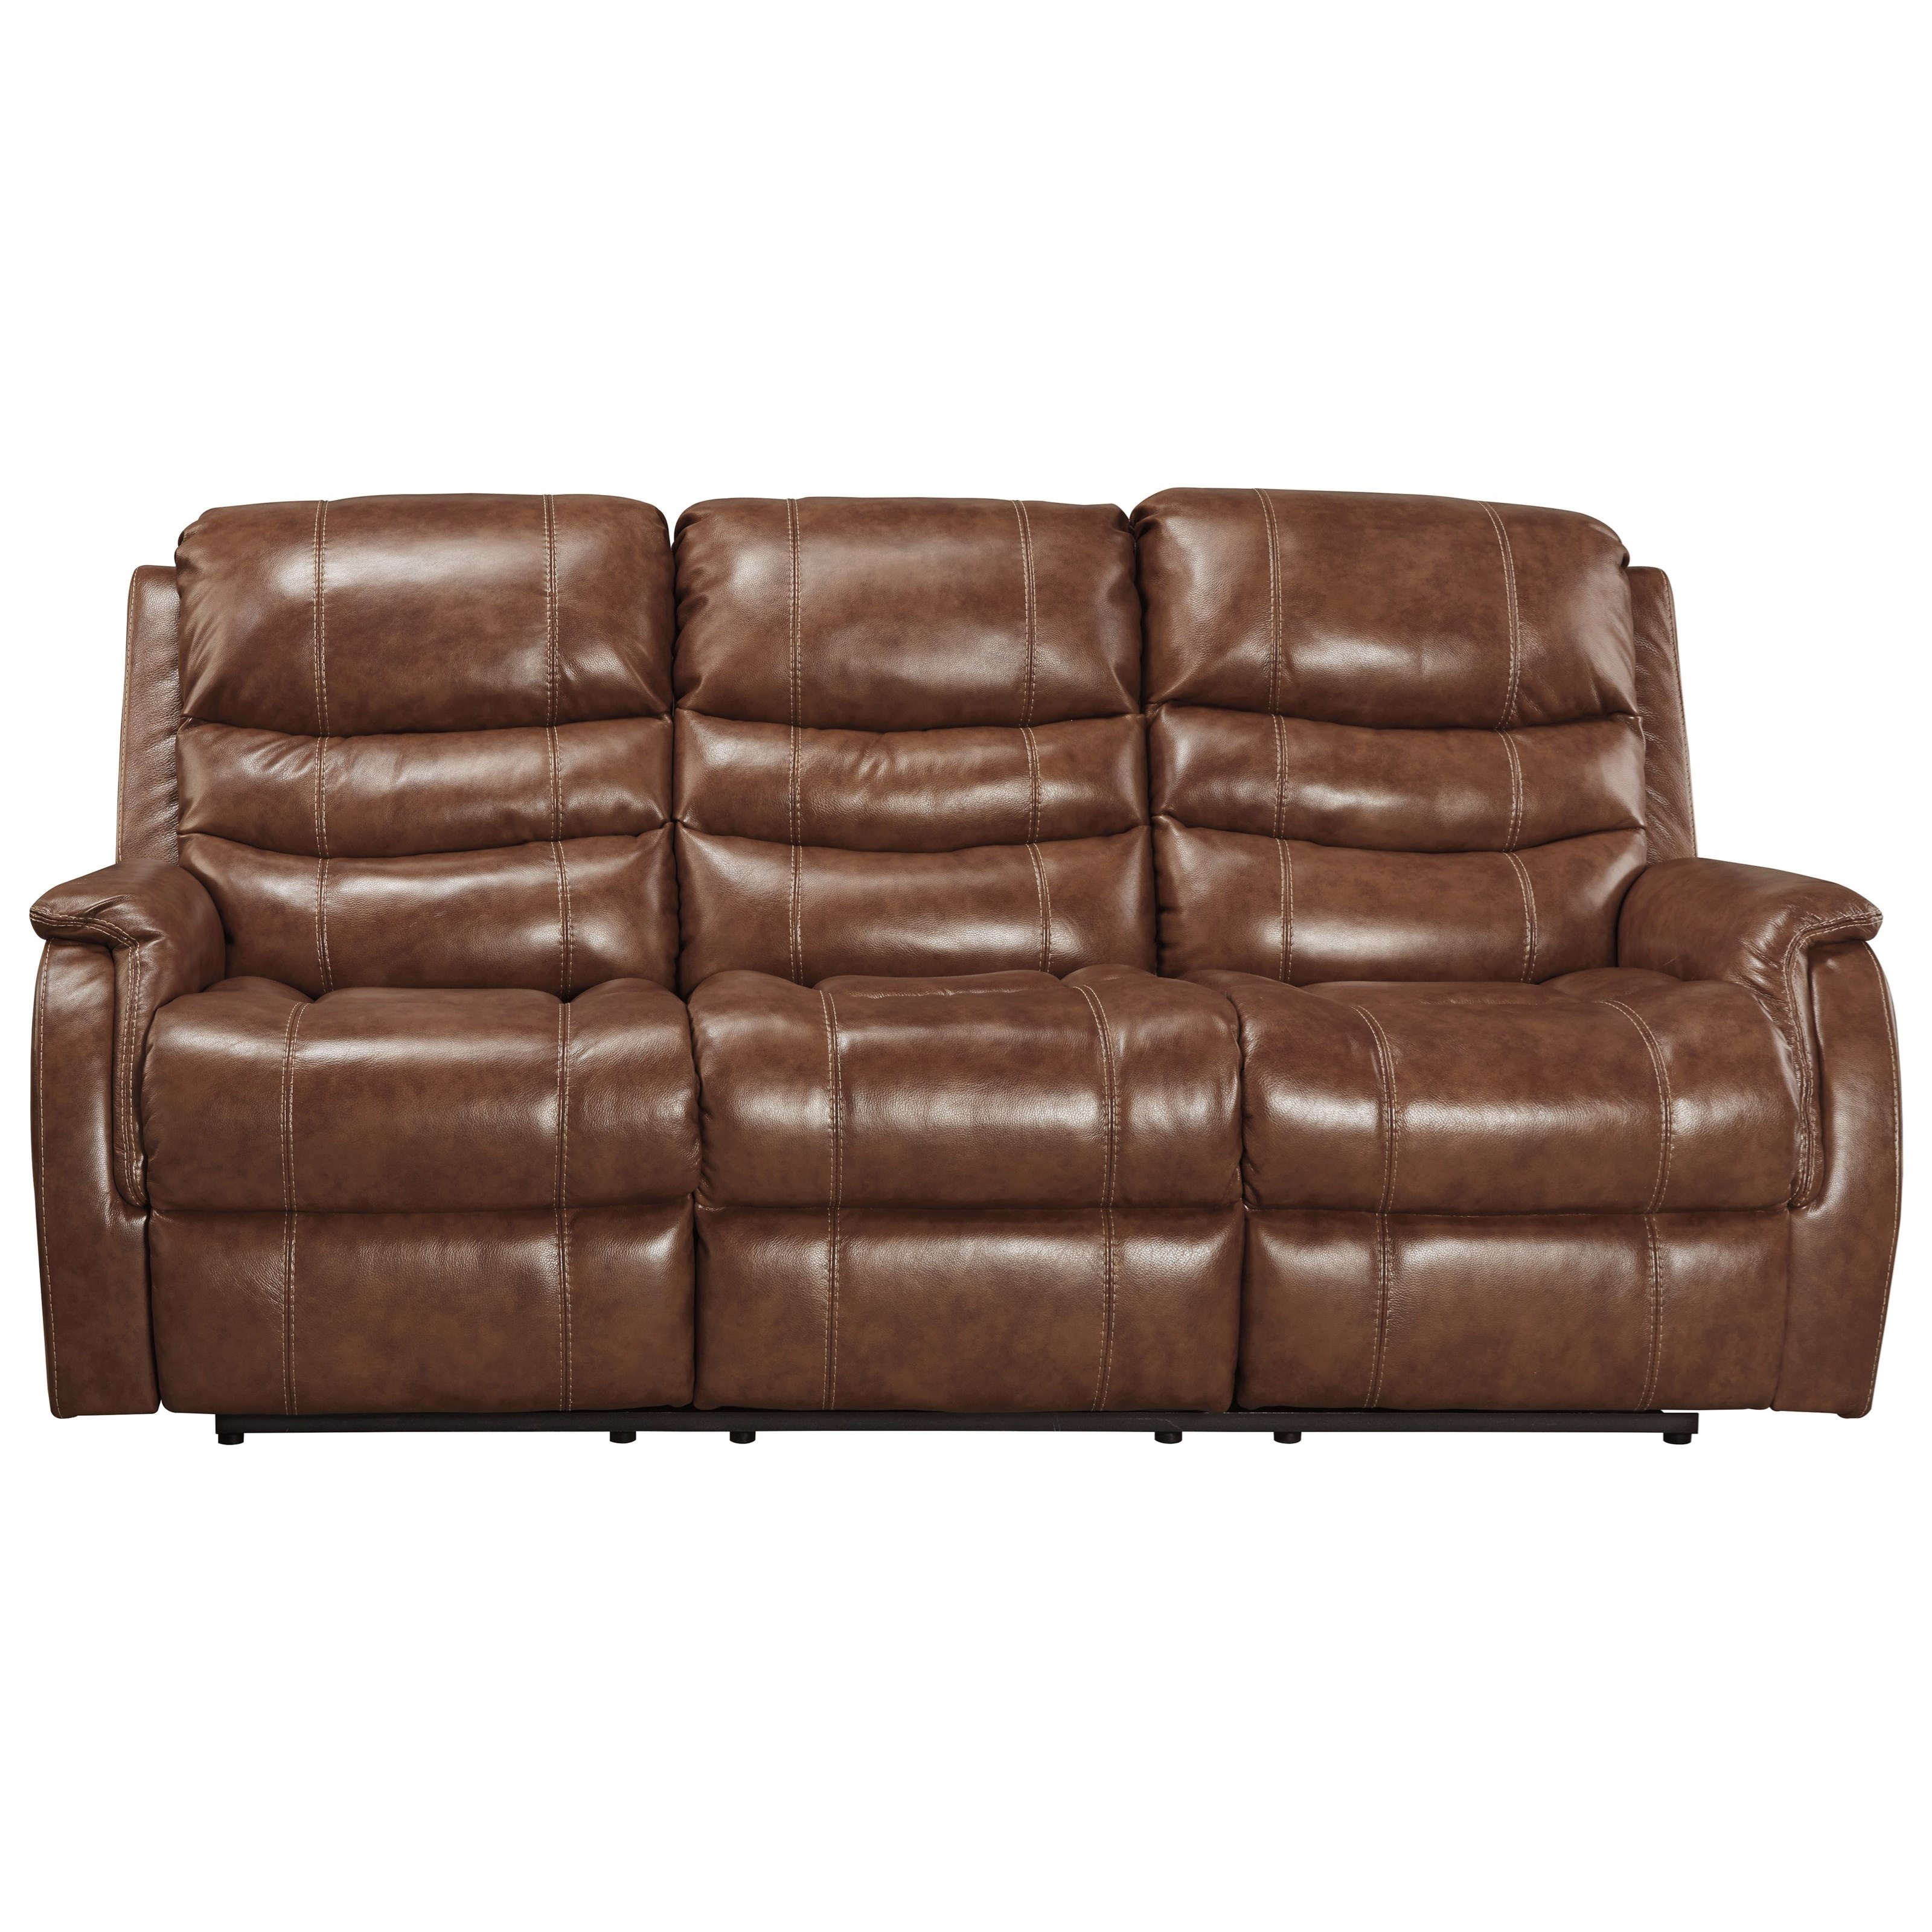 Signature Design by Ashley Metcalf Leather Match Power Reclining Sofa w/ Adjustable Headrest ...